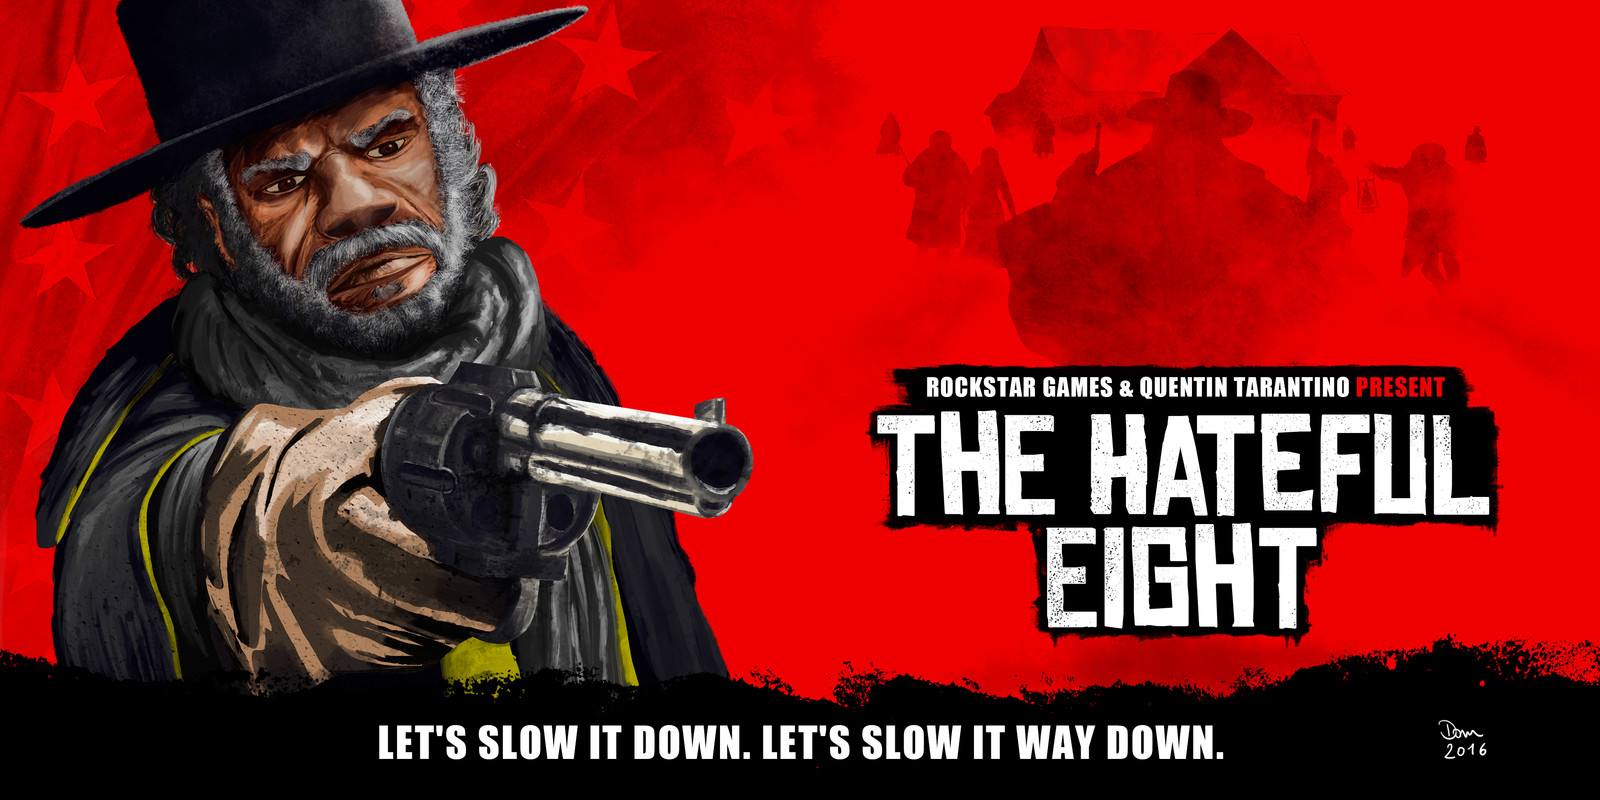 The Hateful Eight meets Red Dead Redemption